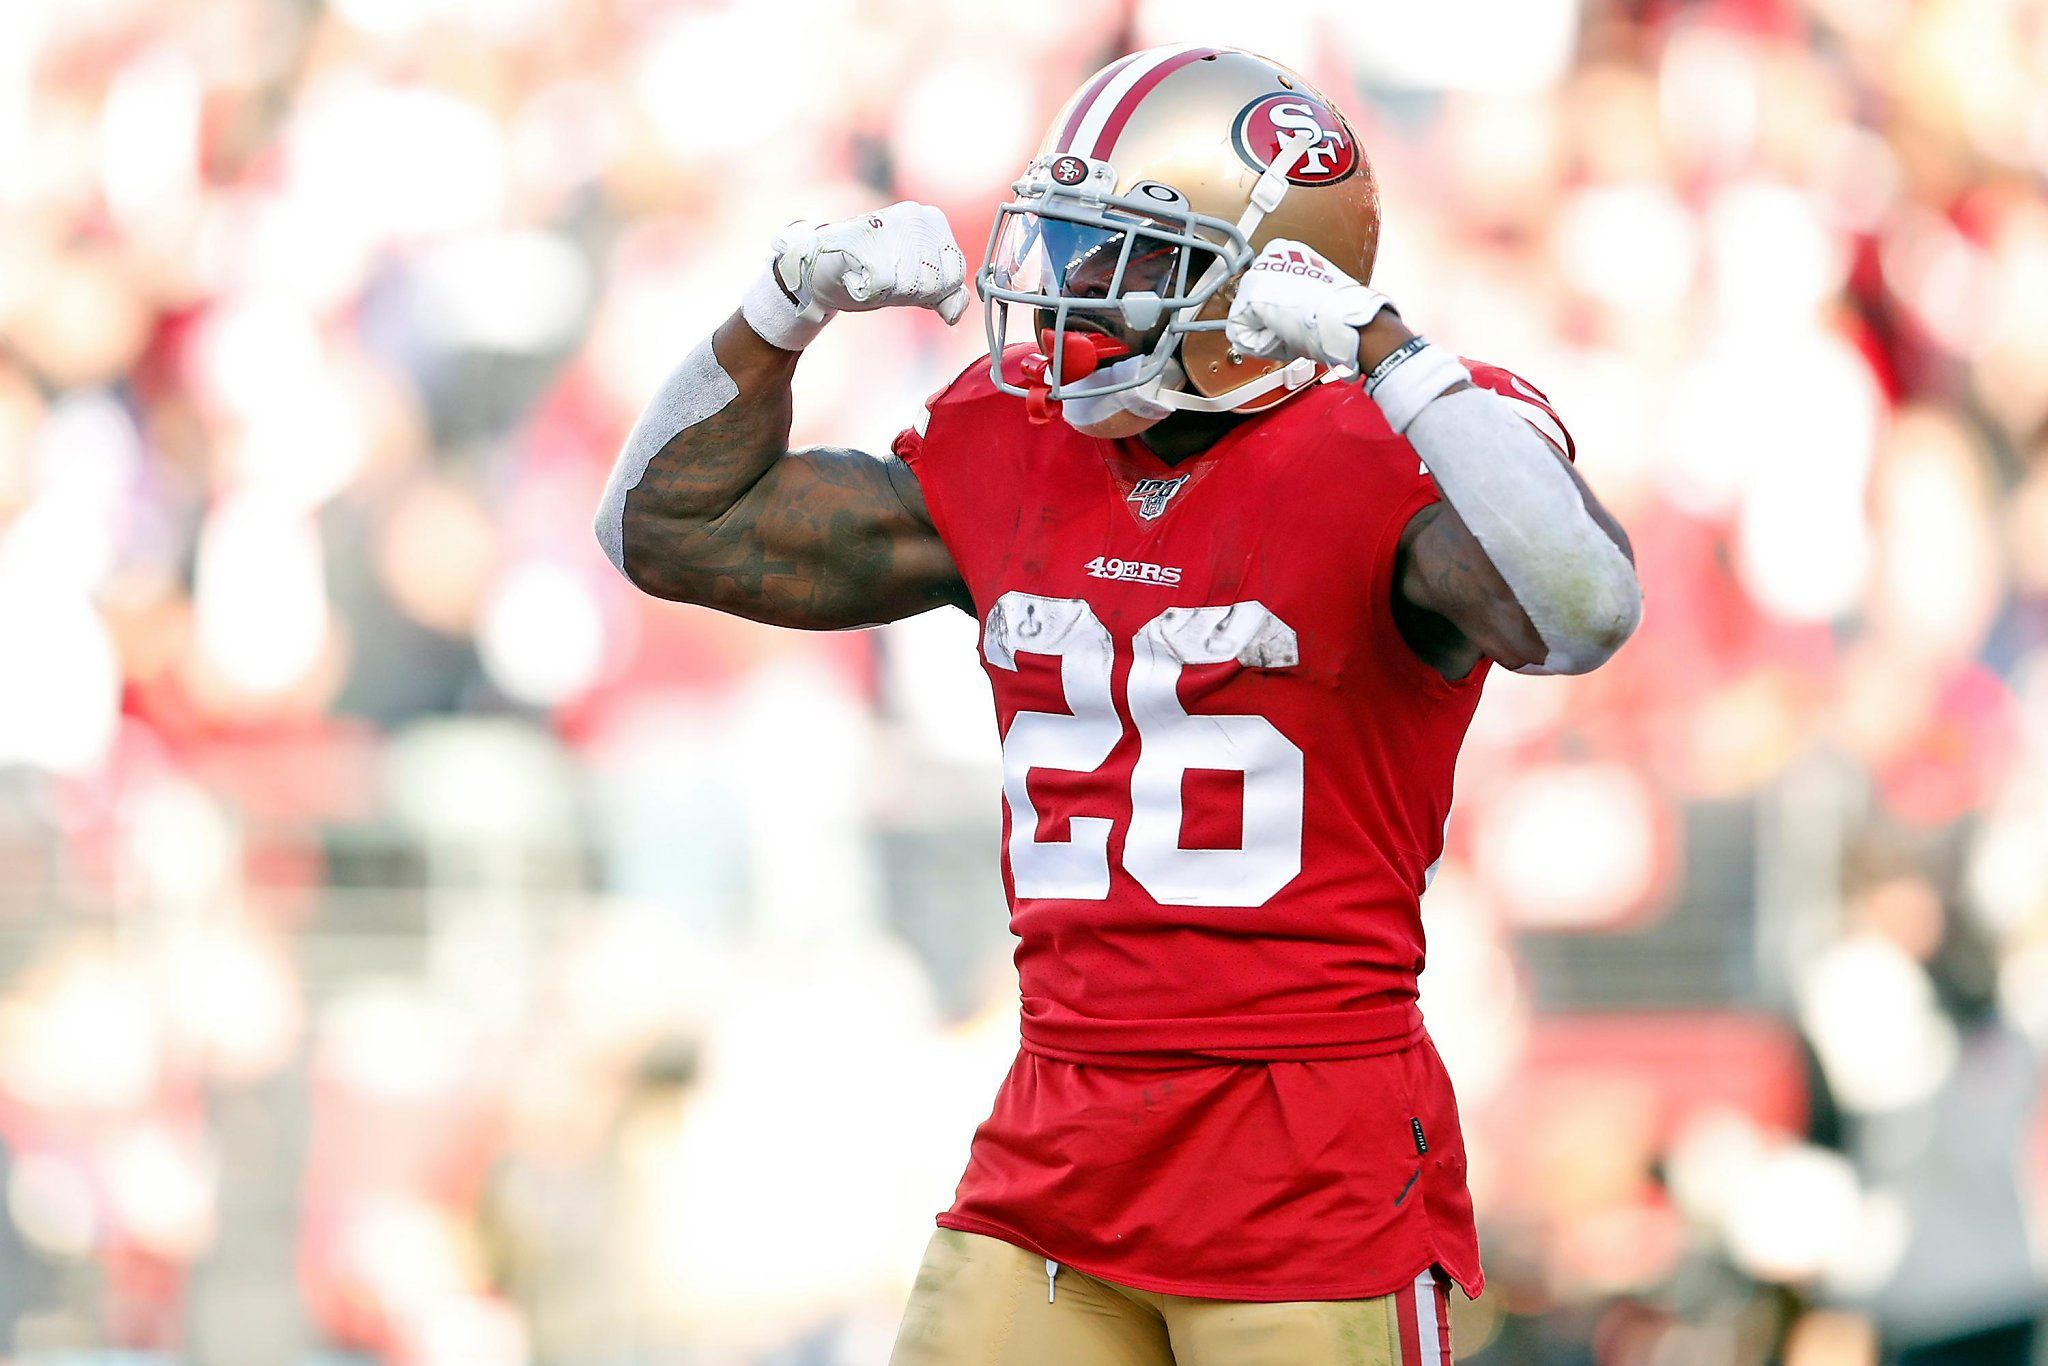 Poor air quality could sideline 49ers' Tevin Coleman for